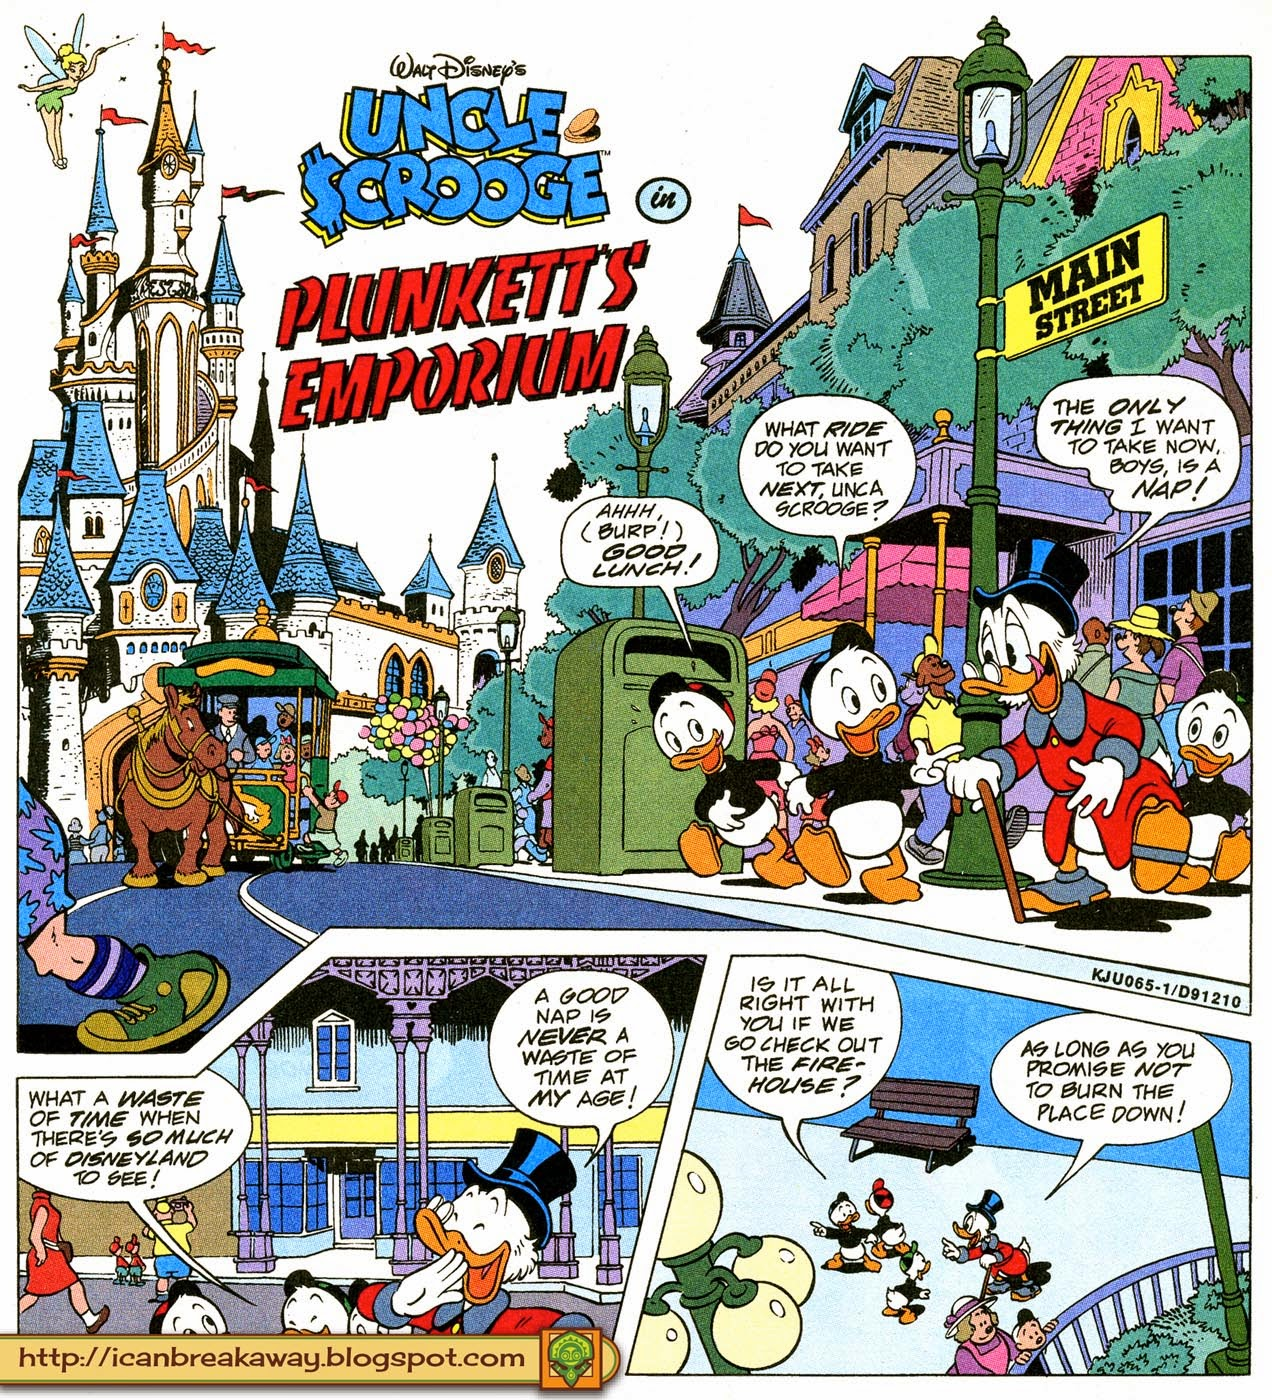 I Can Break Away The Disney Comics Story The